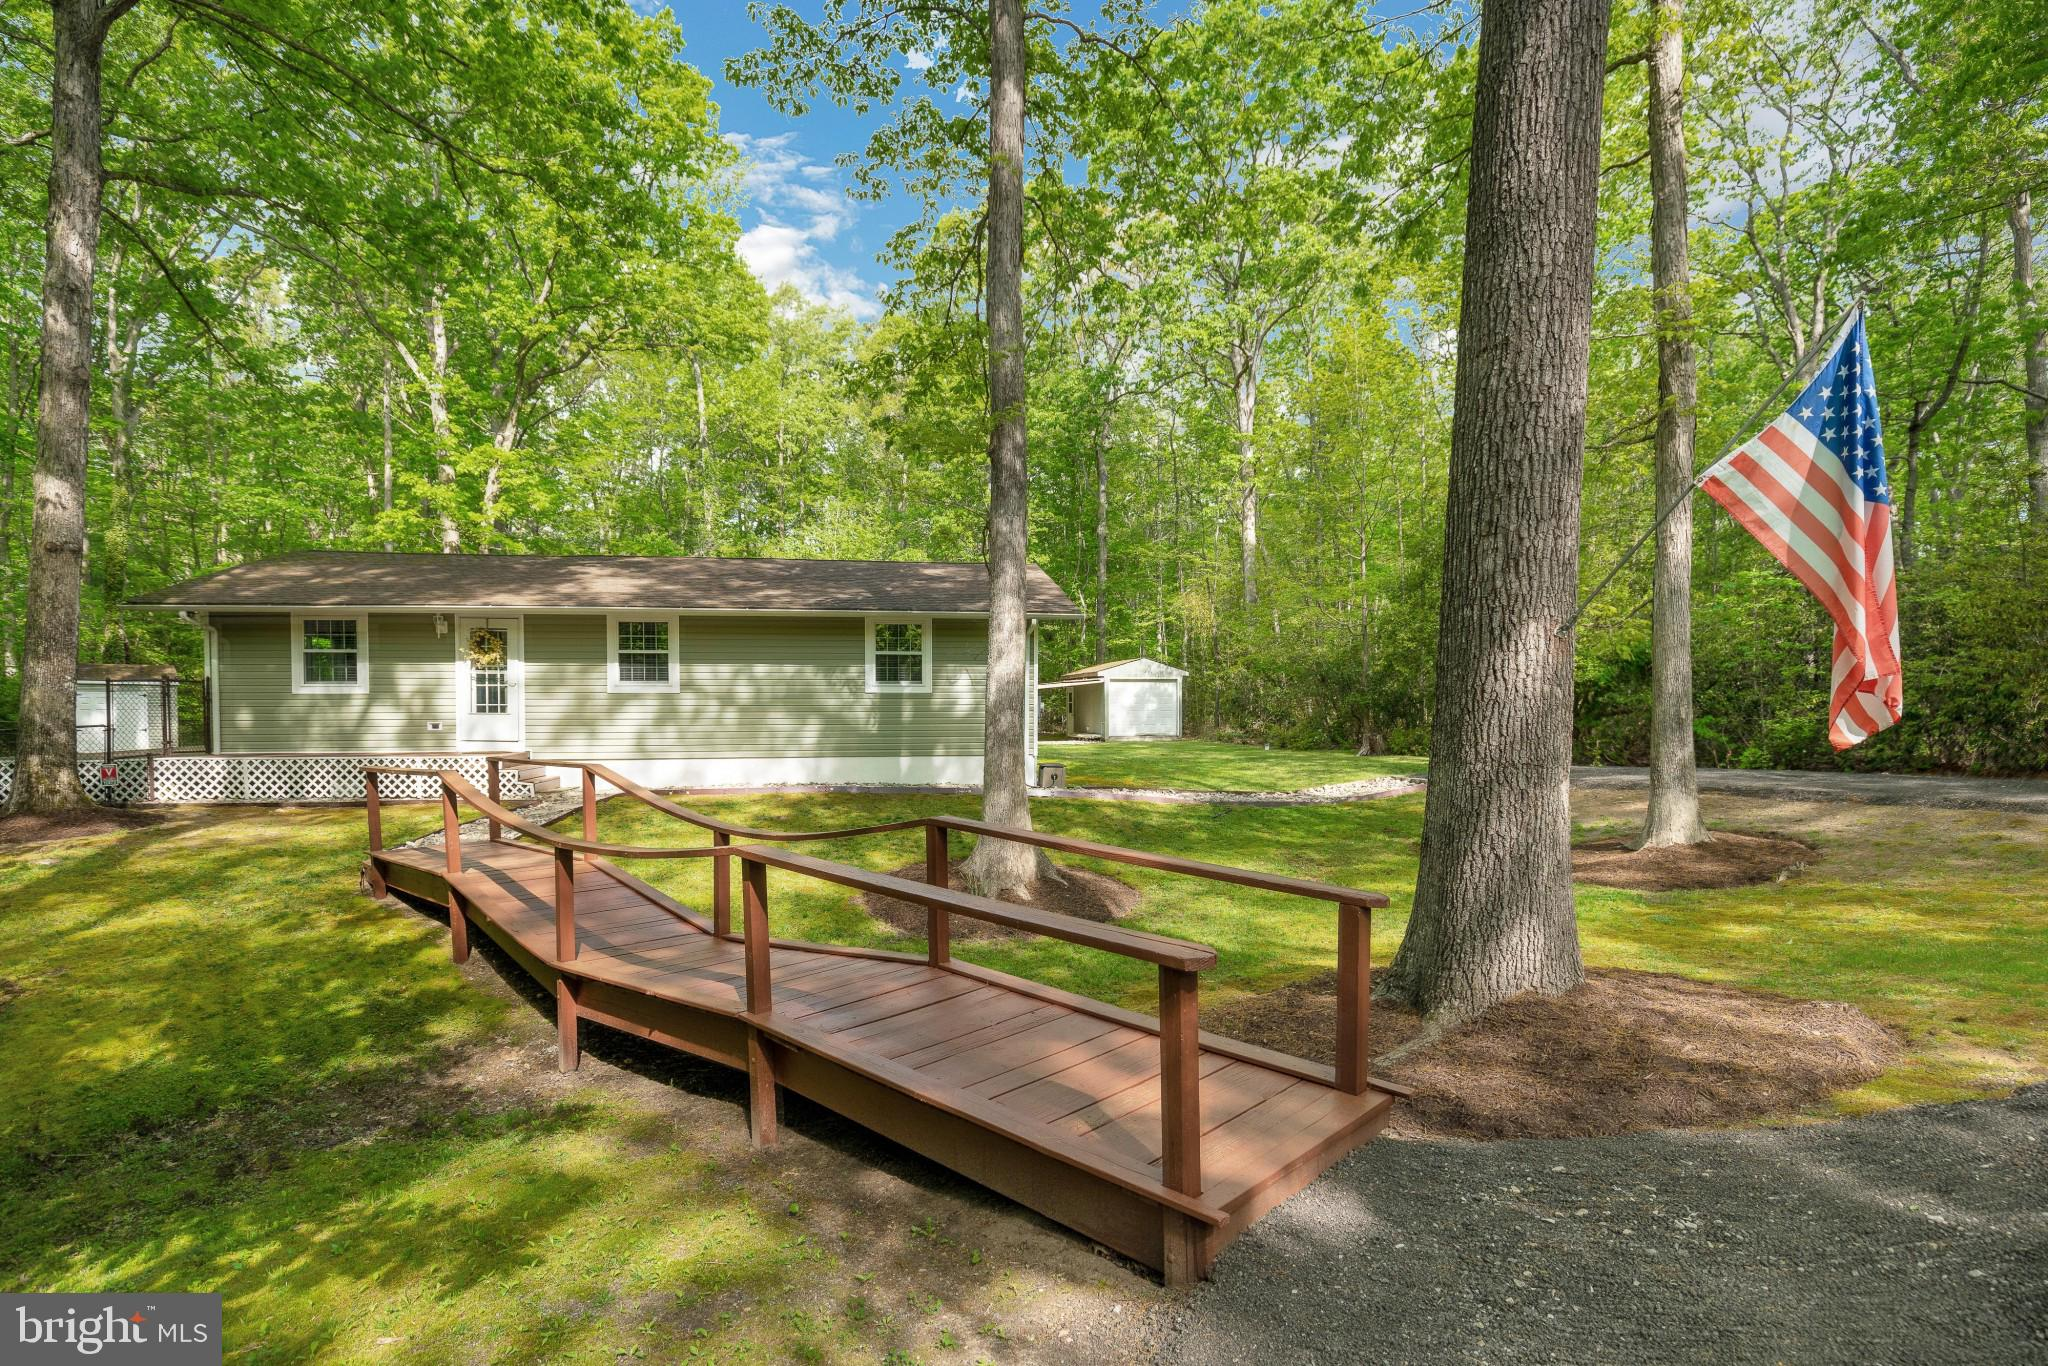 12873 ROUSBY HALL ROAD, LUSBY, Maryland 20657, 3 Bedrooms Bedrooms, ,1 BathroomBathrooms,Single Family,For Sale,12873 ROUSBY HALL ROAD,MDCA181922